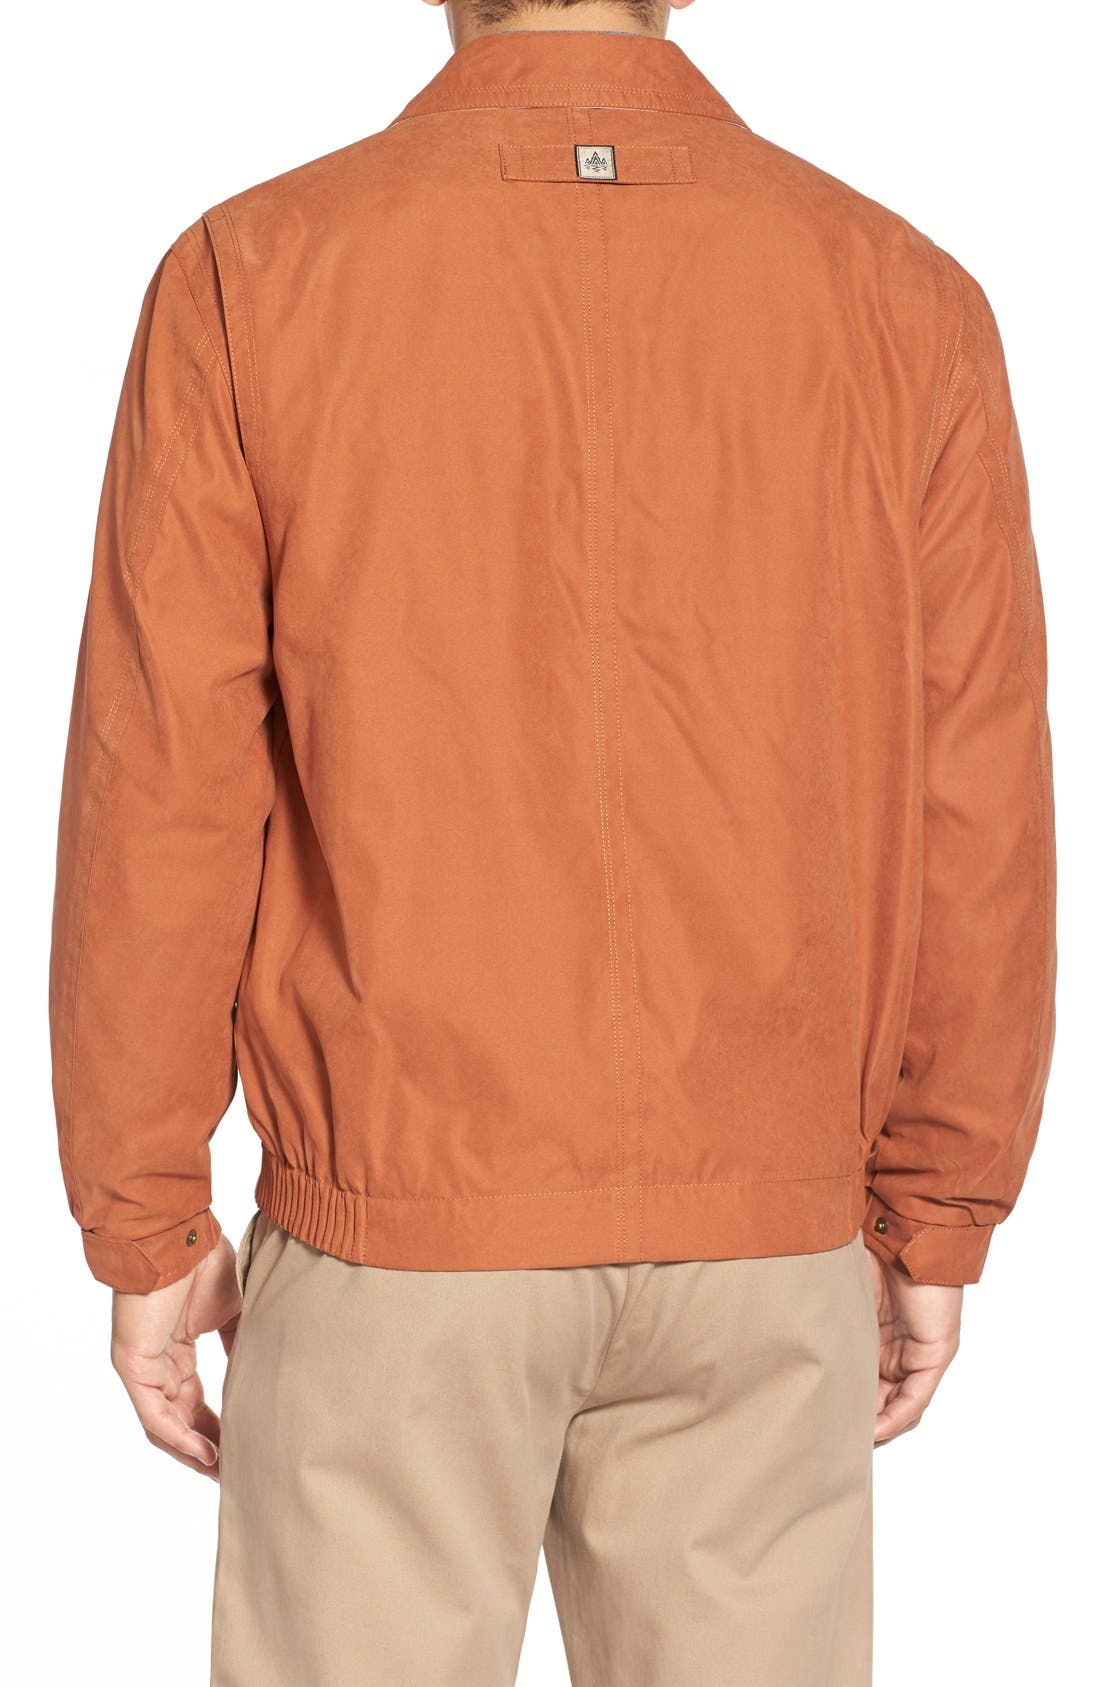 'Microseta' Lightweight Golf Jacket,                             Alternate thumbnail 20, color,